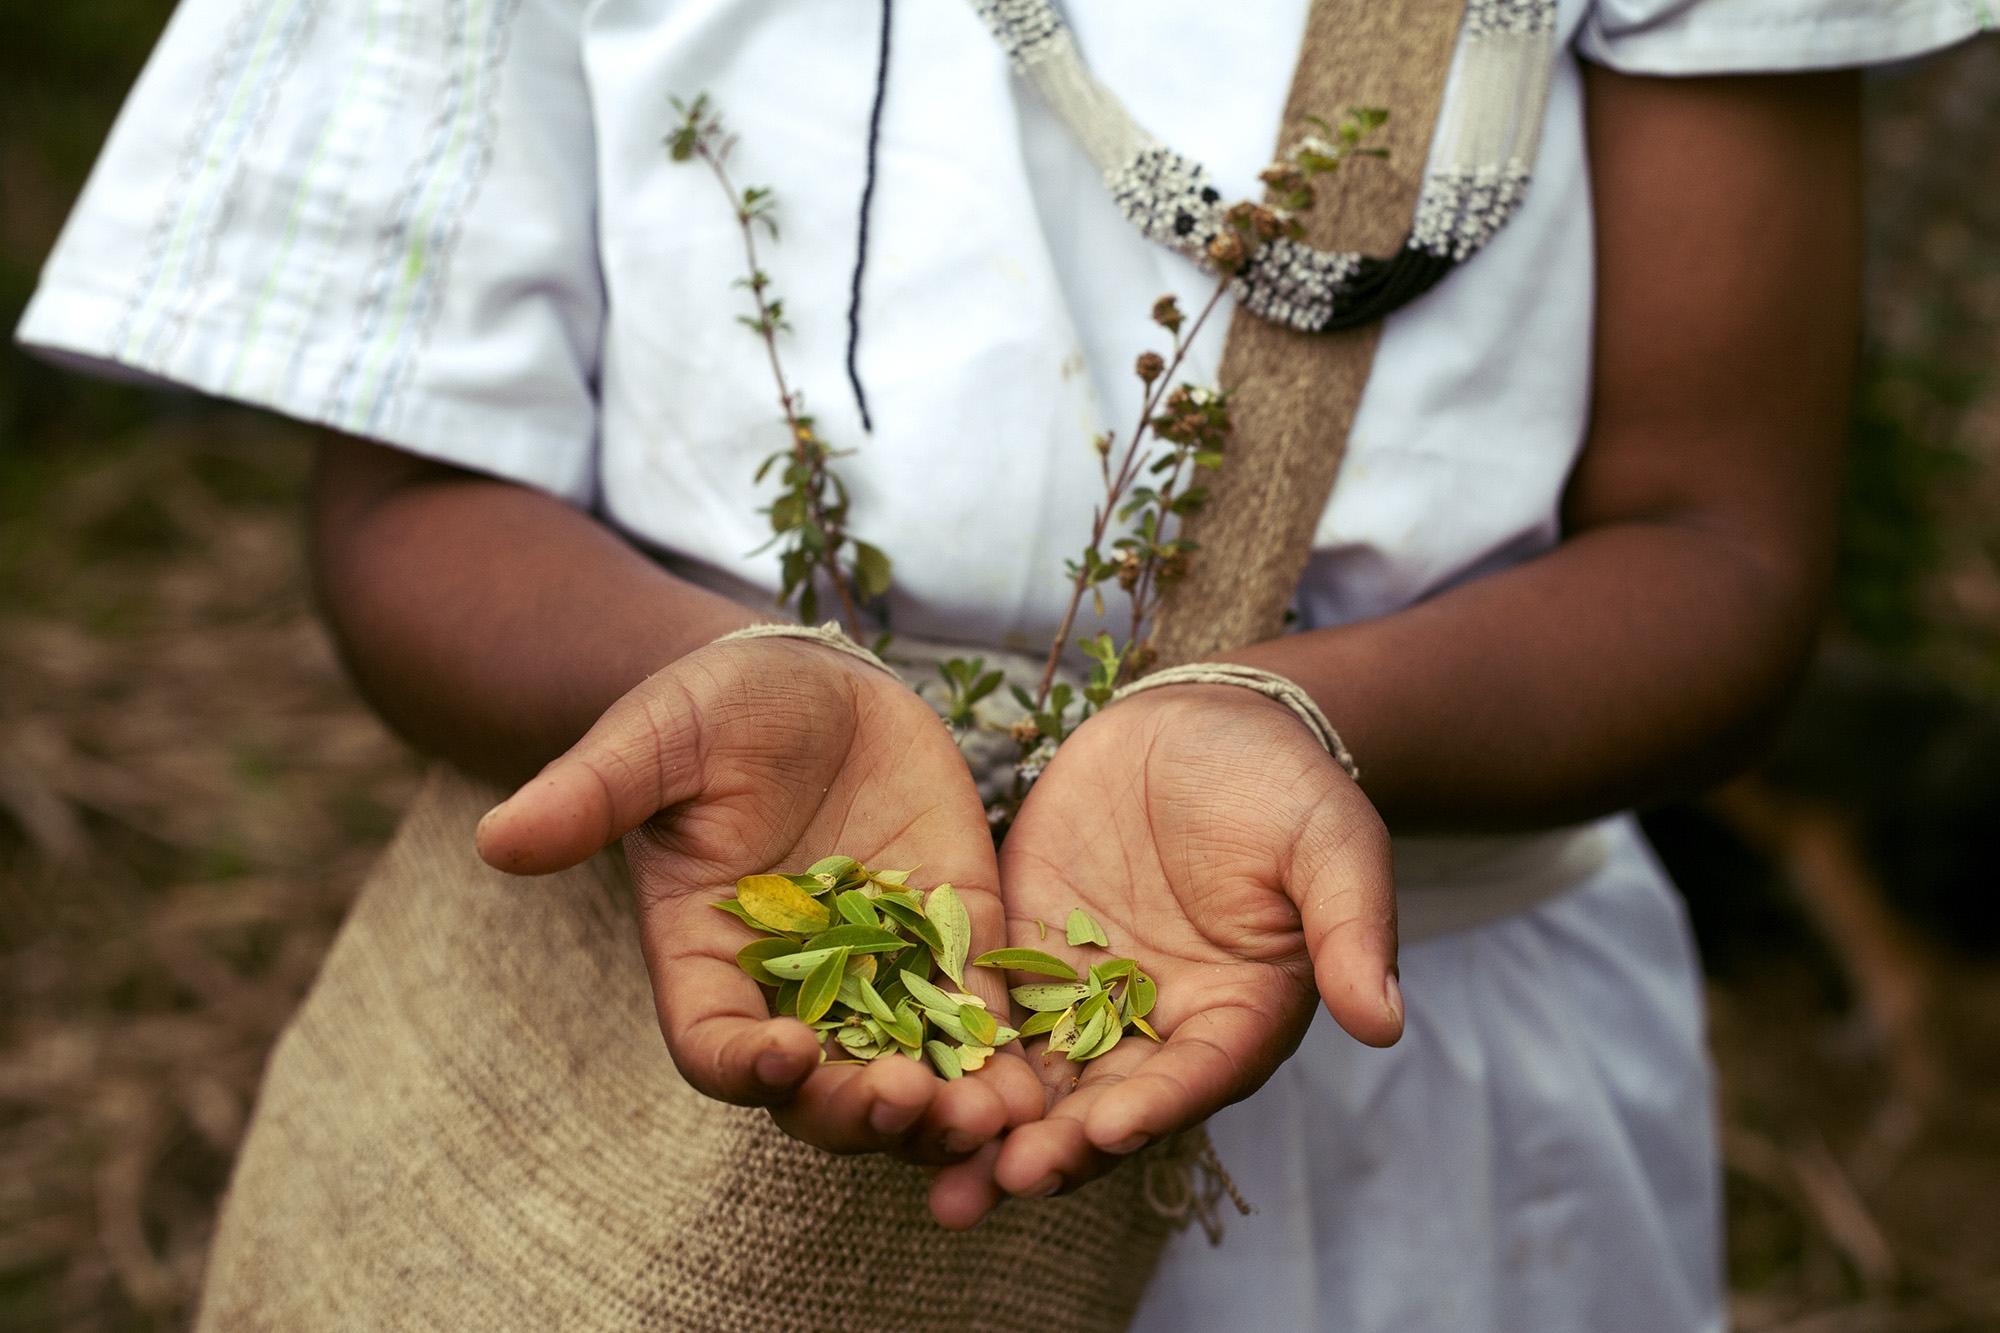 Daniela Villafaña of the Arhuaca ethnic group, shows in her hands coca leaves for the daily ceremonies her people have. The coca leaf is fundamental for the cultural development of the peoples of the Sierra Nevada of Colombia, as well as for other peoples throughout Colombia and South America. It is not considered a drug but a sacred plant and in that sense the natives profess a deep respect. Nabusimake, Cesar, Colombia.